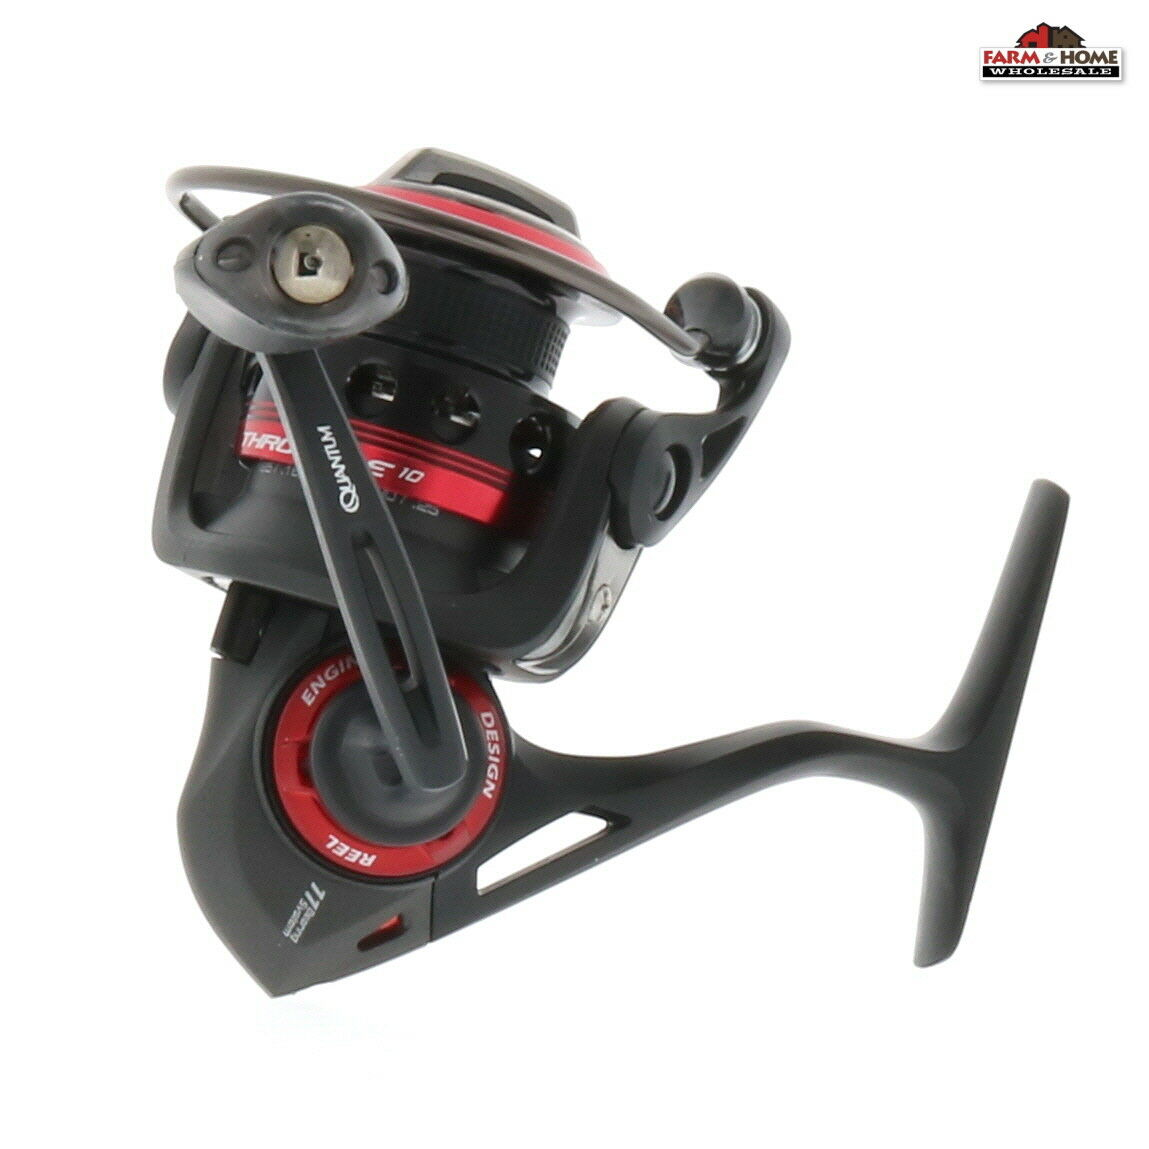 Quantum Thredtle TH10 Spinning Freshwater Fishing Reel  New